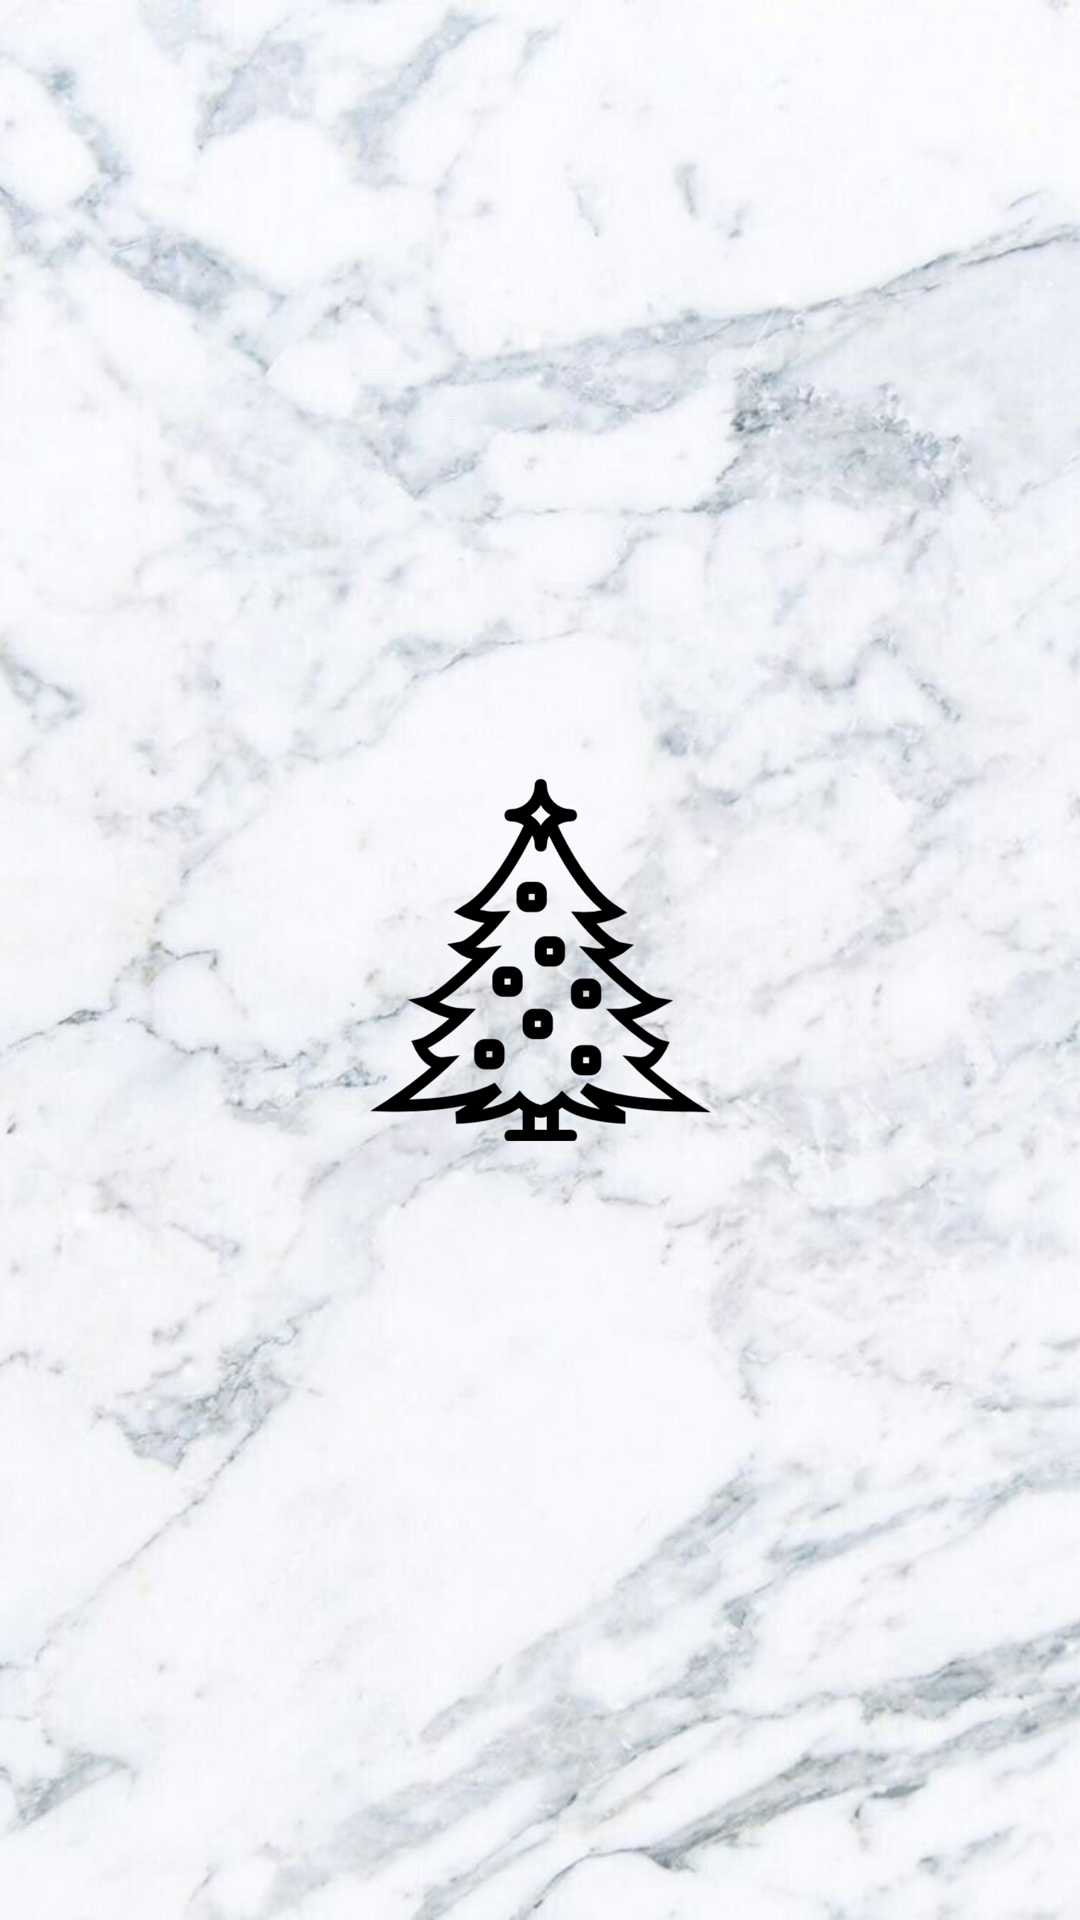 Christmas Icon For Instagram Highlights.Pinterest M A D S Instagram Christmas Instagram Logo